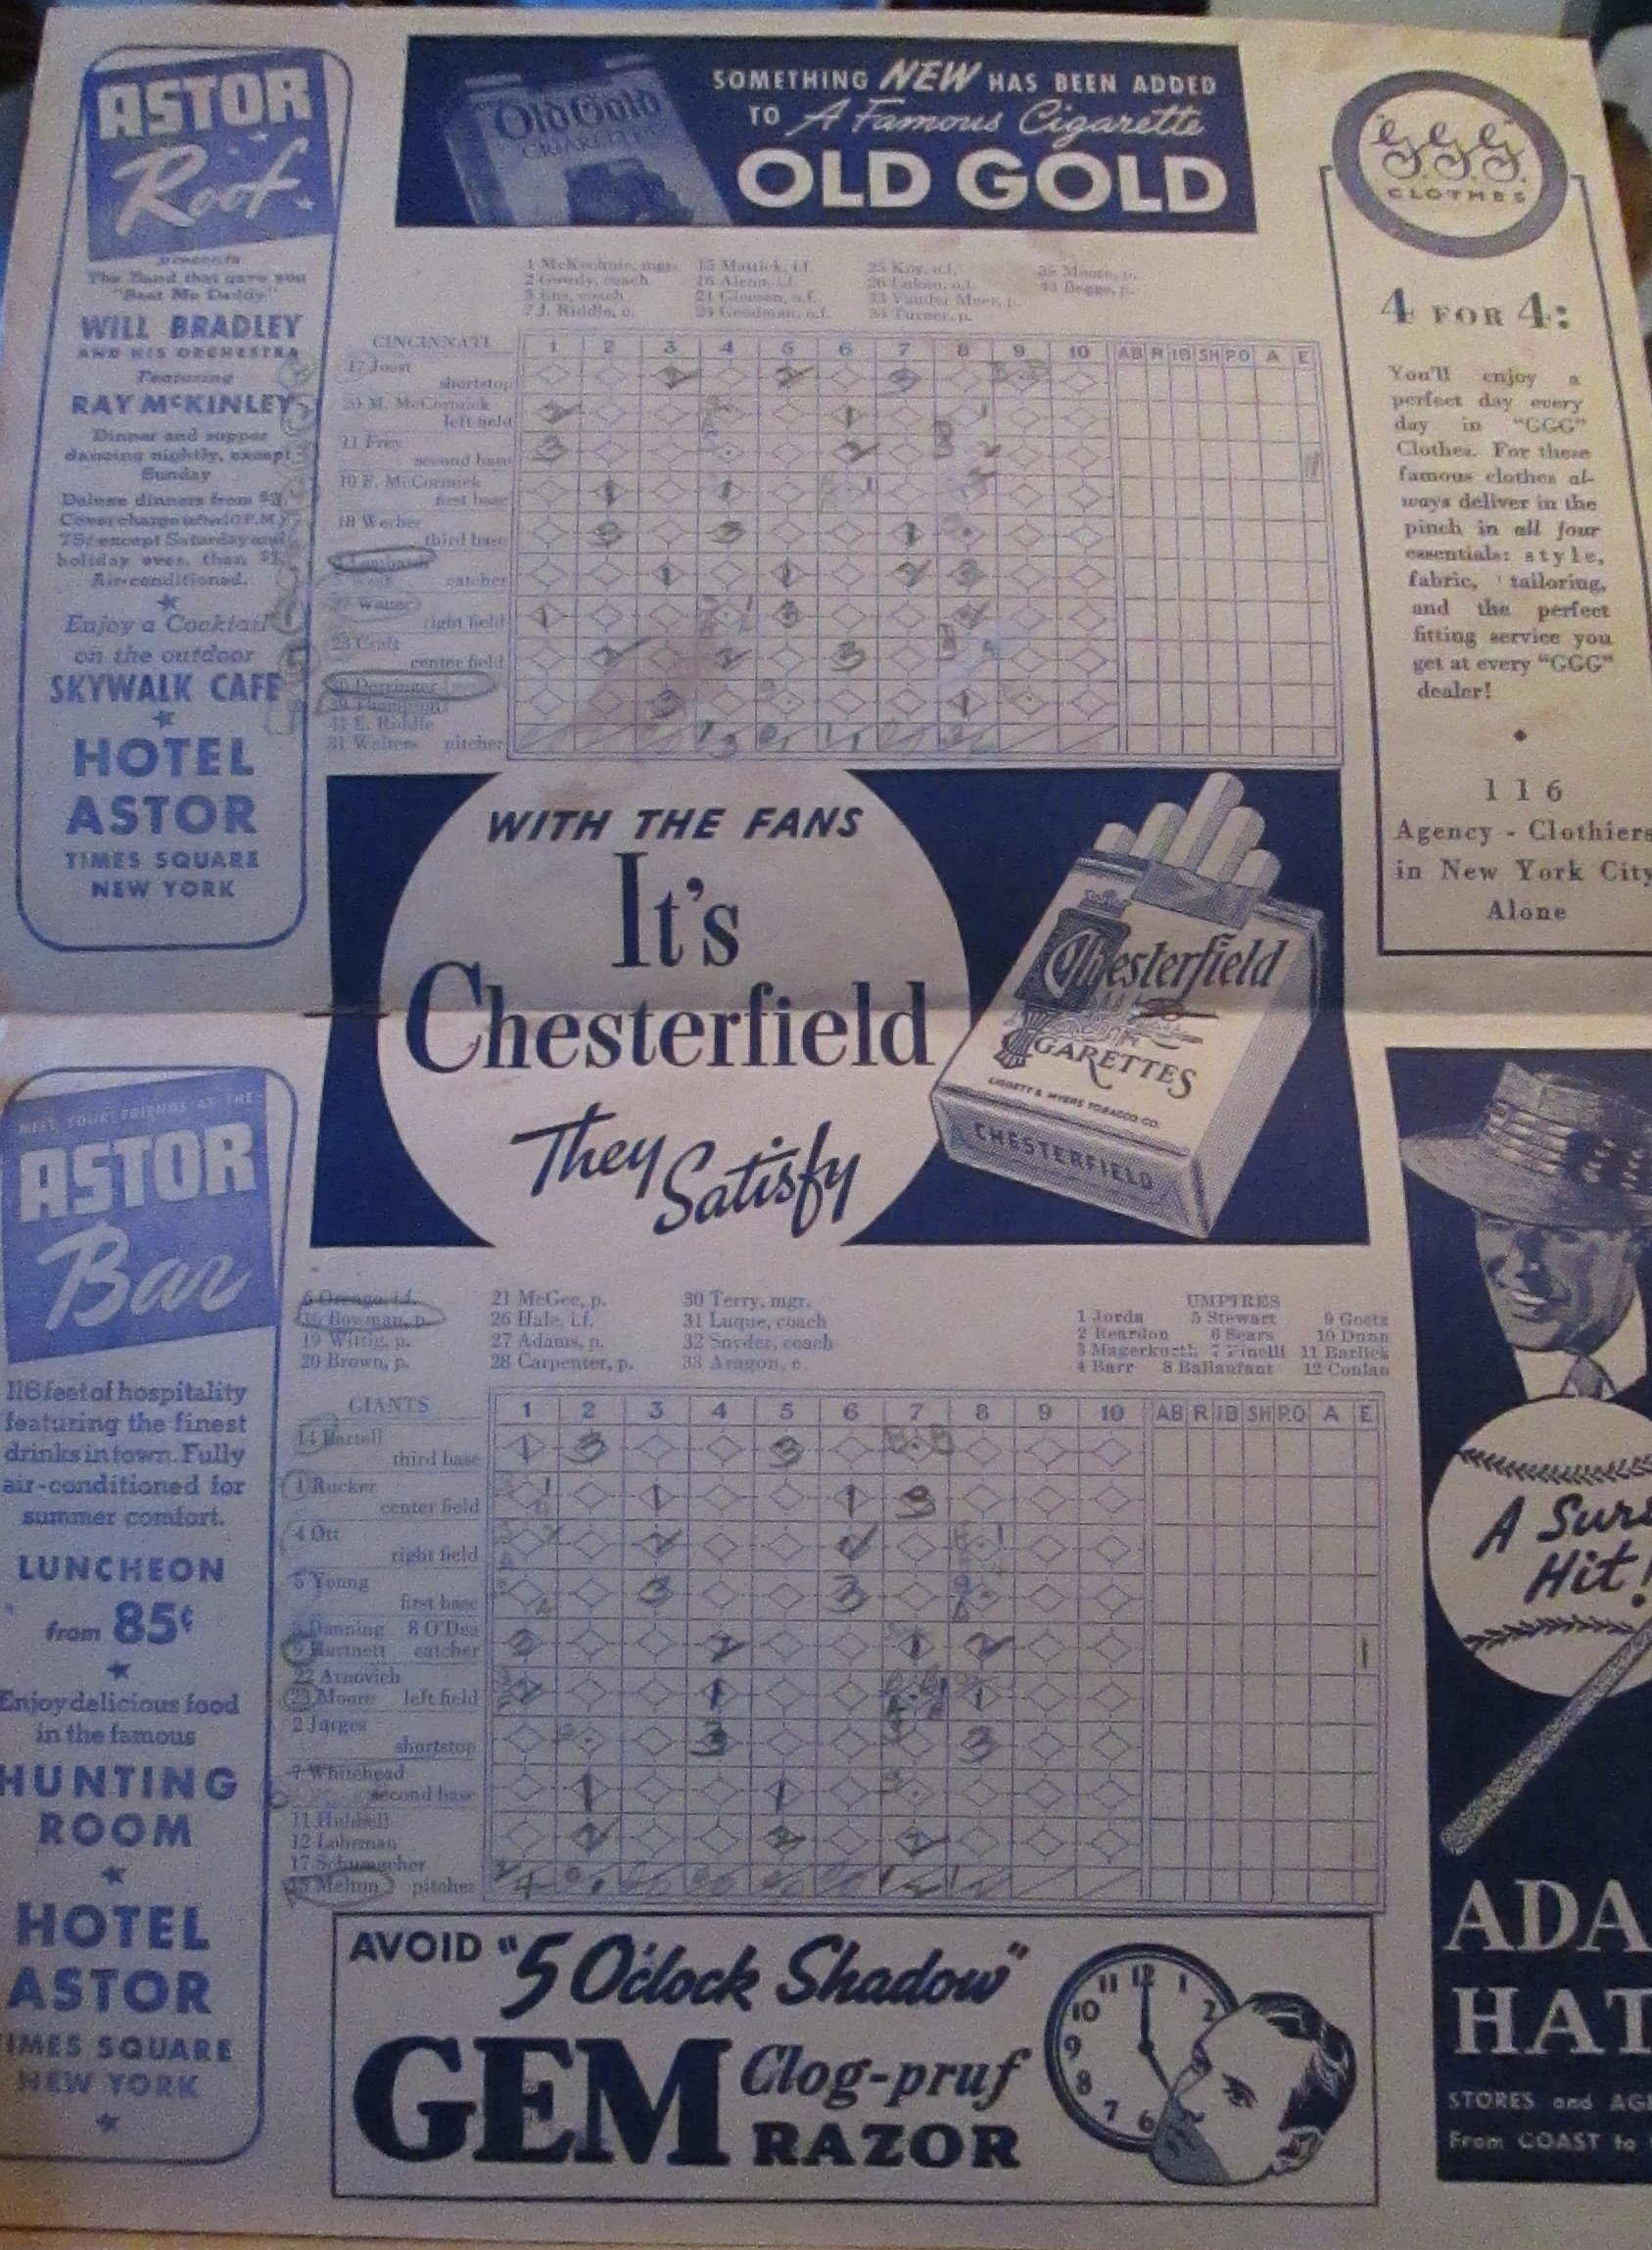 1941 NEW YORK GIANTS BASEBALL OFFICIAL SCORE CARD VS CINCINATTI REDS AT THE POLO GROUNDS PUBLISHED BY HARRY M. STEVENS (MEL OTT, JOHNNY RUCKER, AND MORE PLUS INCREDIBLE ADVERTISING)